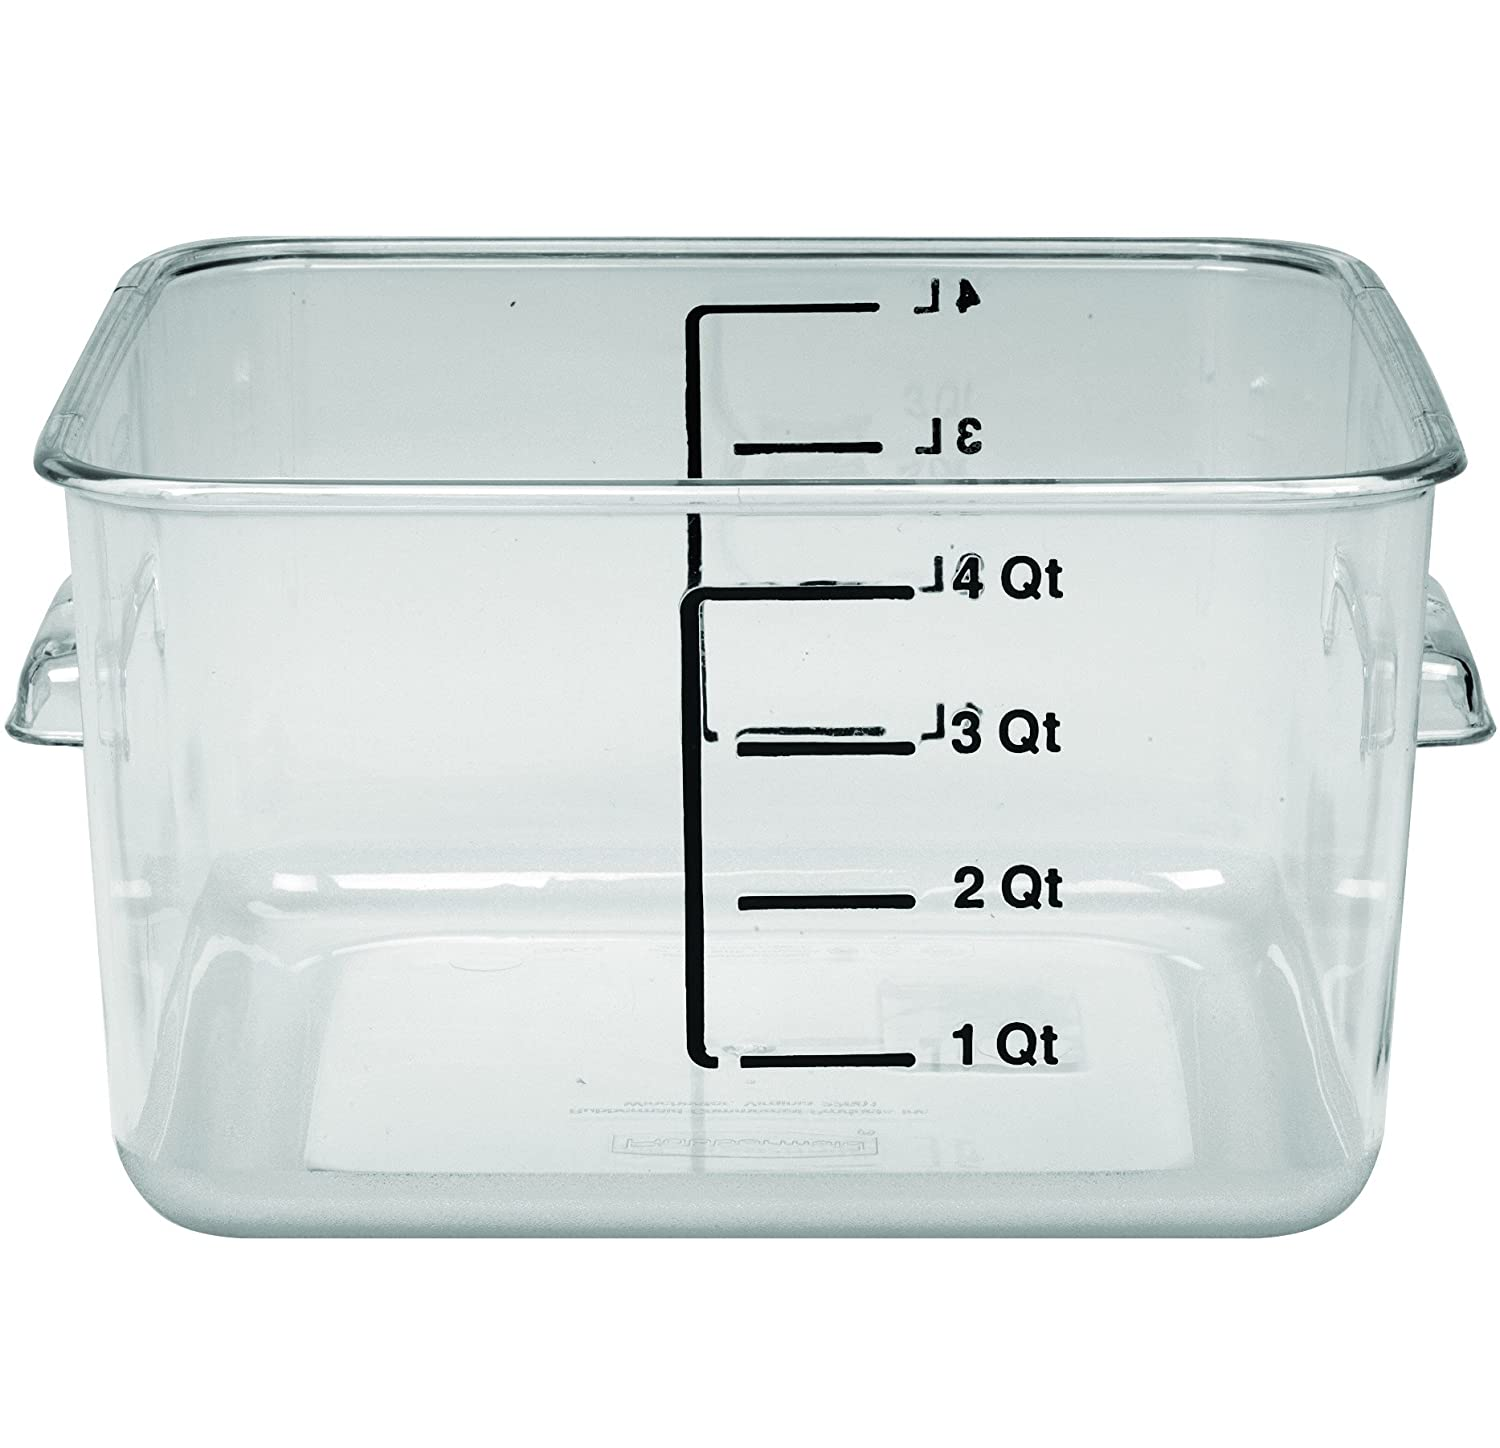 Rubbermaid Commercial FG630400CLR Polycarbonate 1 Gallon Space Saving Storage Container, Clear